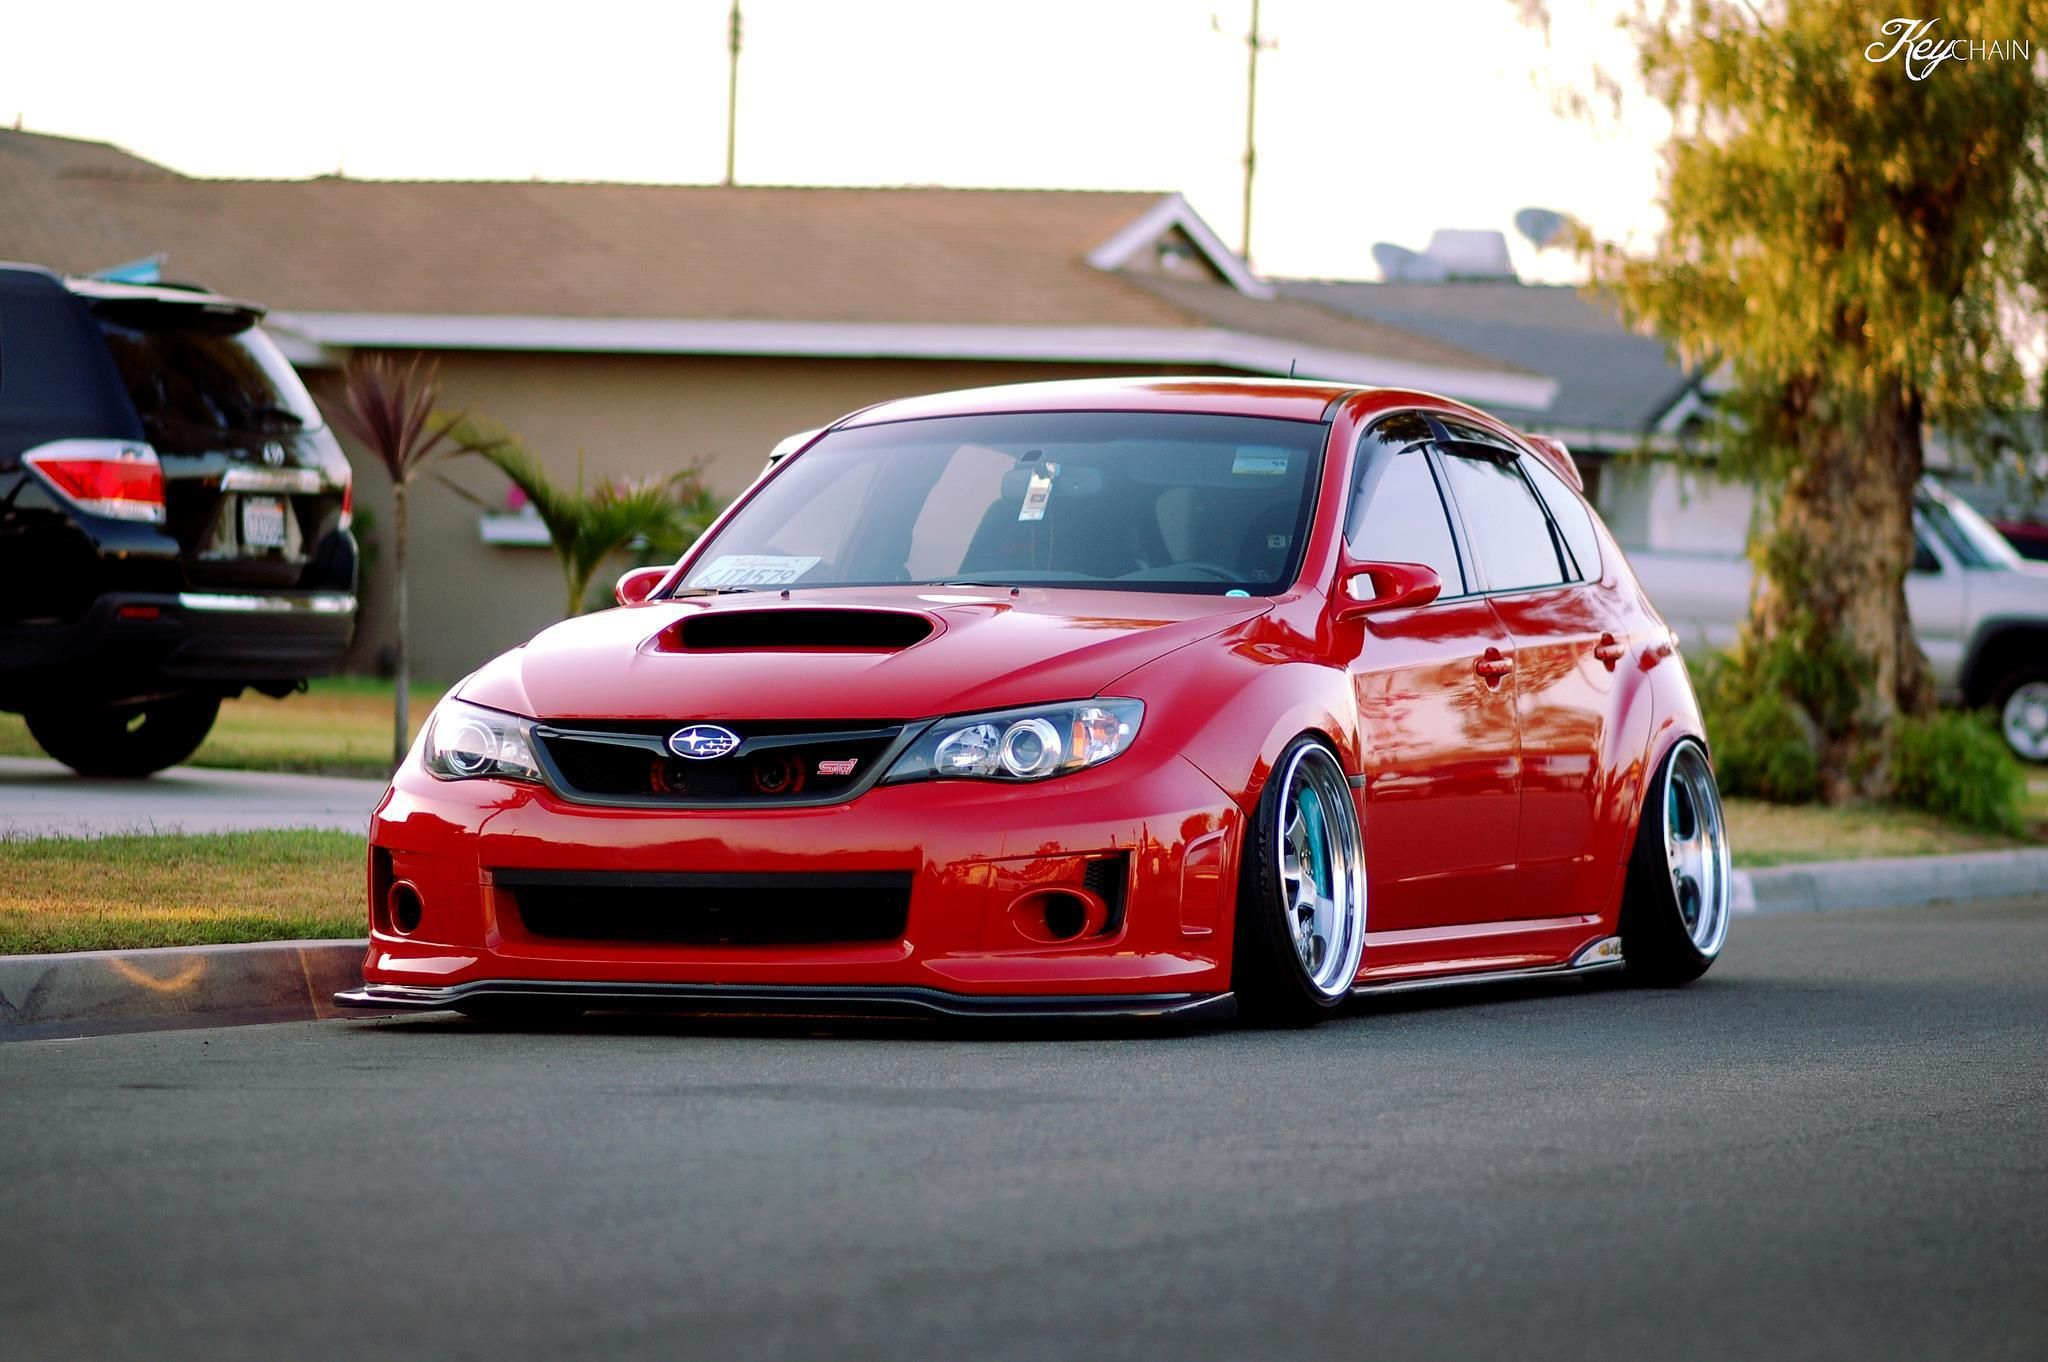 Stanced subaru sti hatchback dream cars pinterest subaru sti stanced subaru sti hatchback vanachro Images